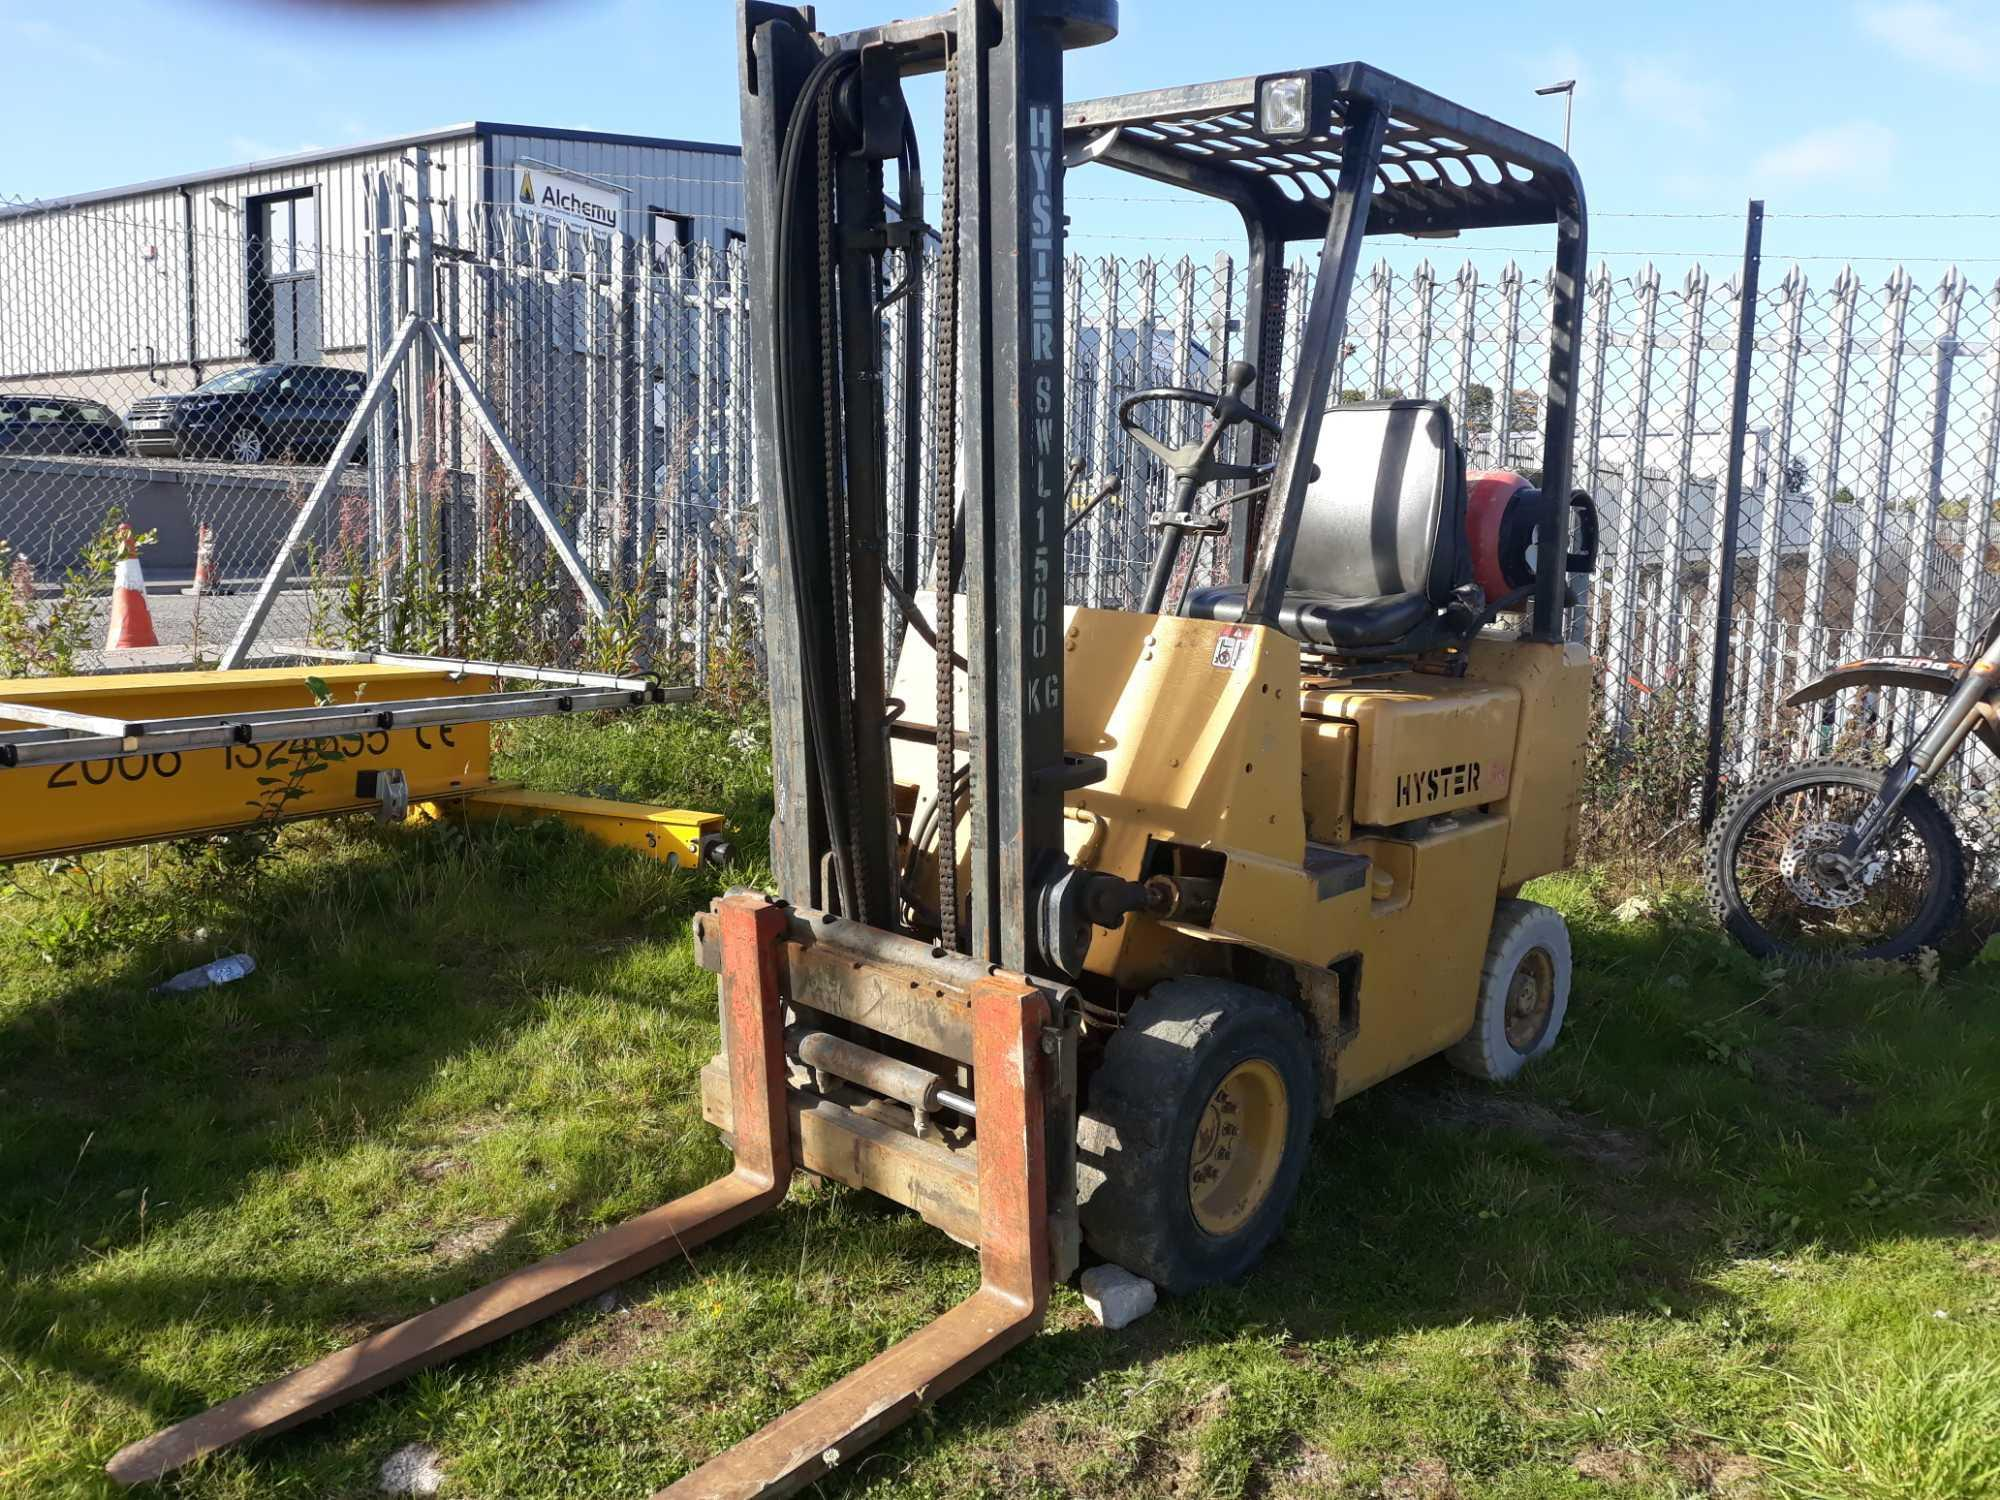 Lot 2038 - HYSTER 1.5 TON FORKLIFT